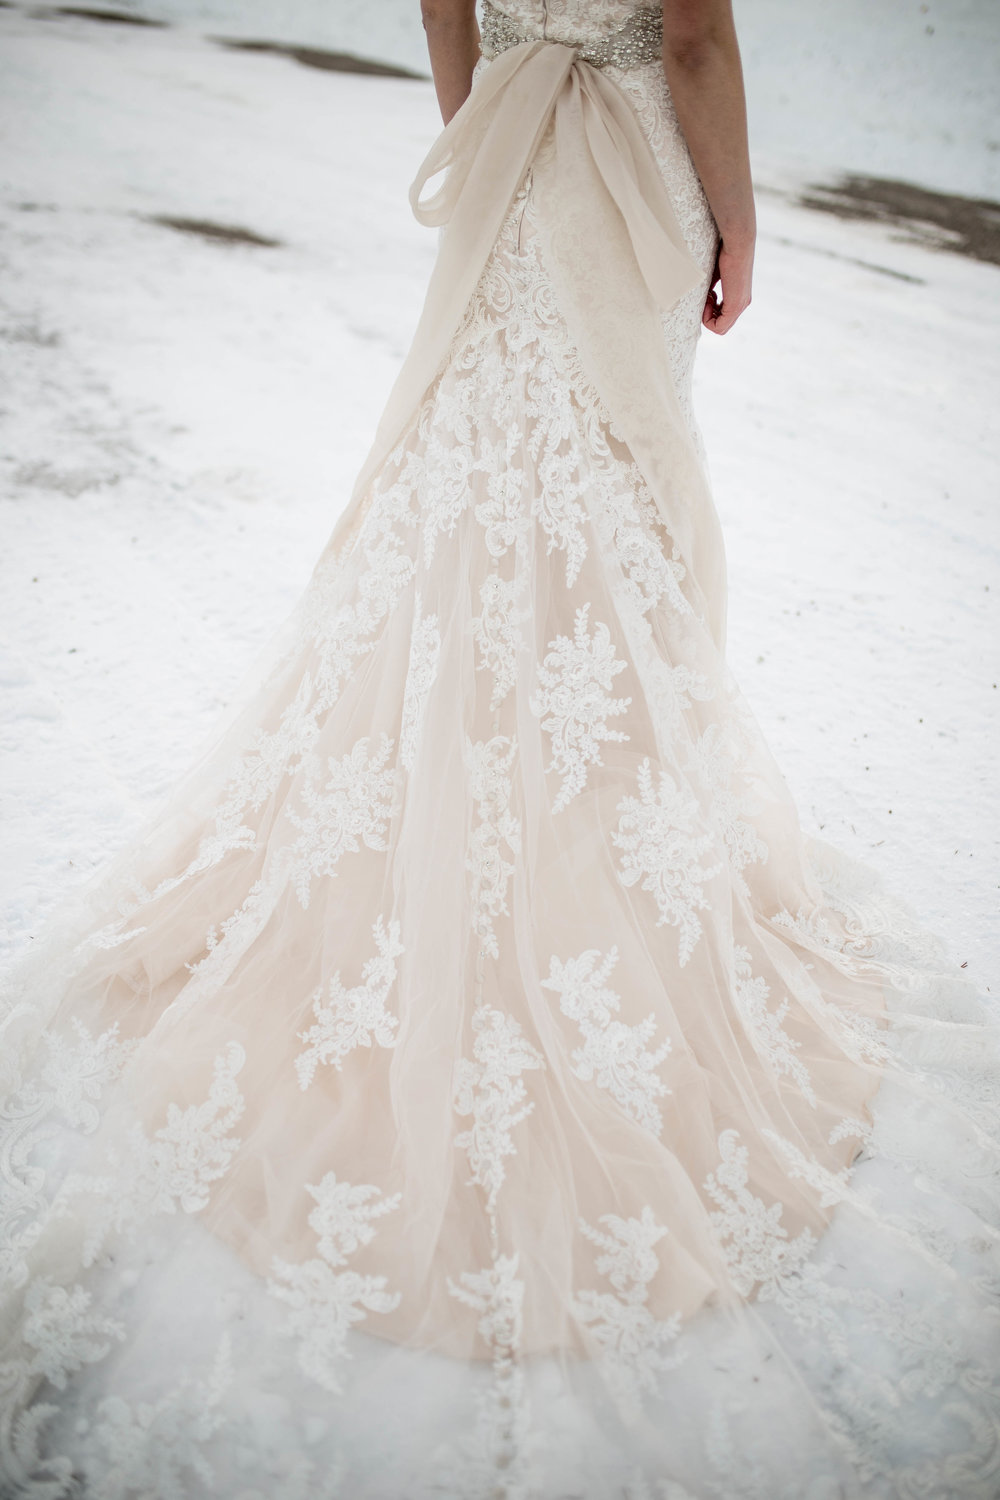 WinterWeddingBridalsTarghee (98 of 121).jpg